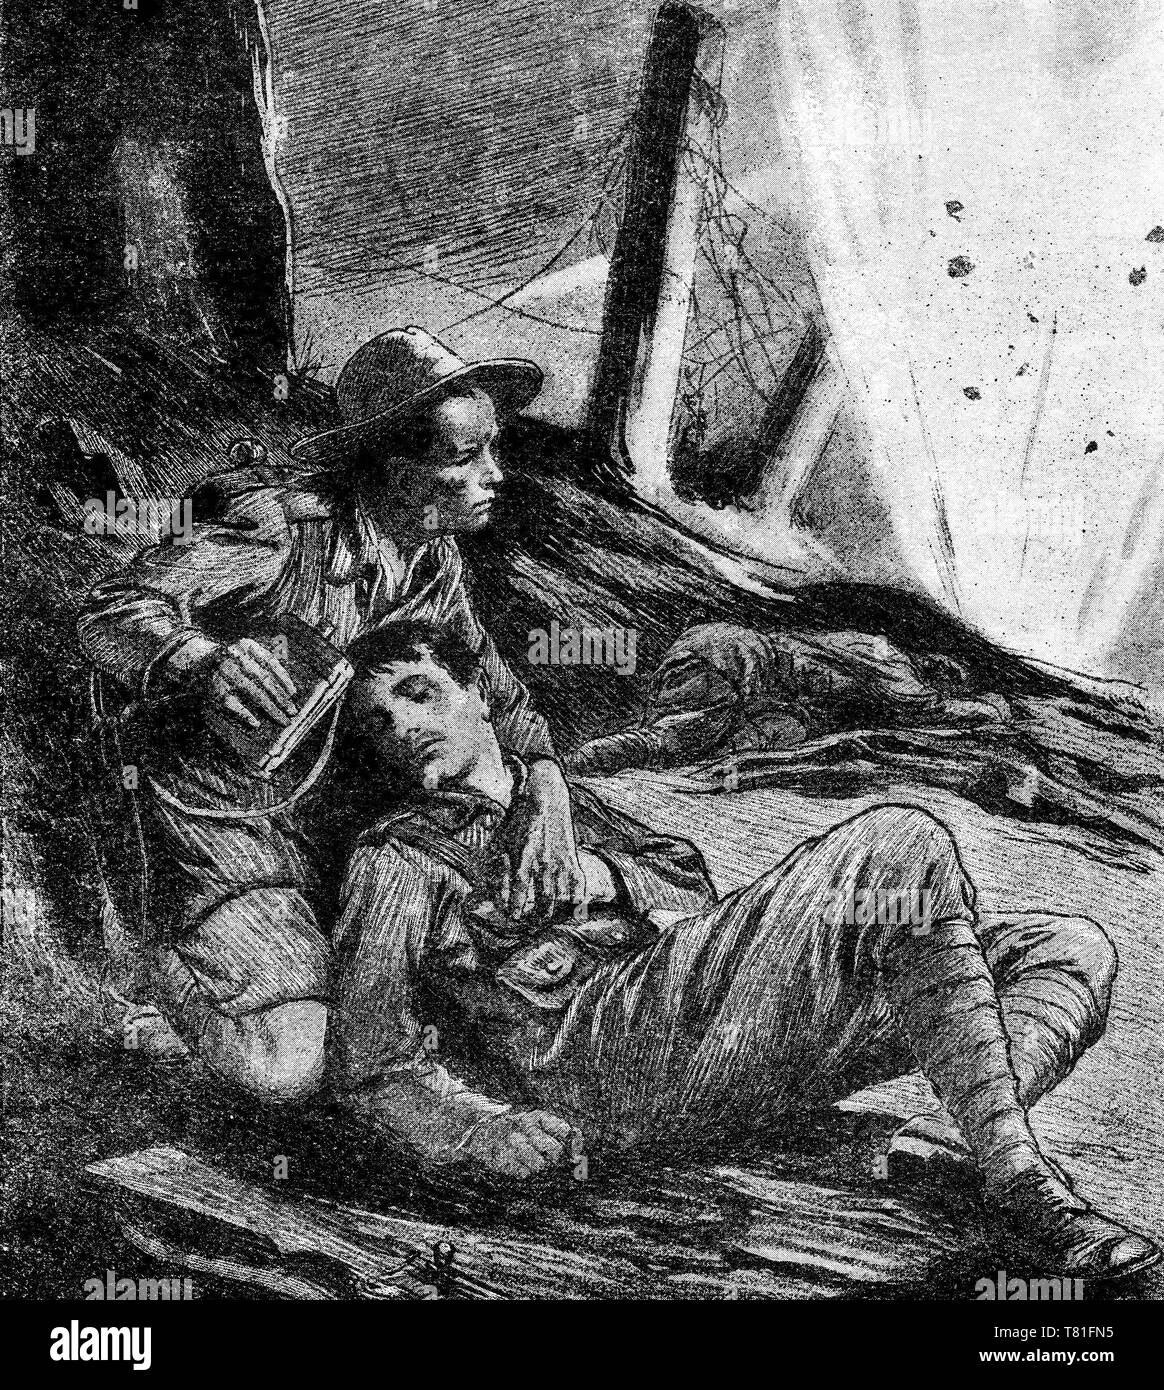 halftone of a Ghurka giving some water to a British soldier on the battlefield. From Chatterbox magazine, 1917 - Stock Image